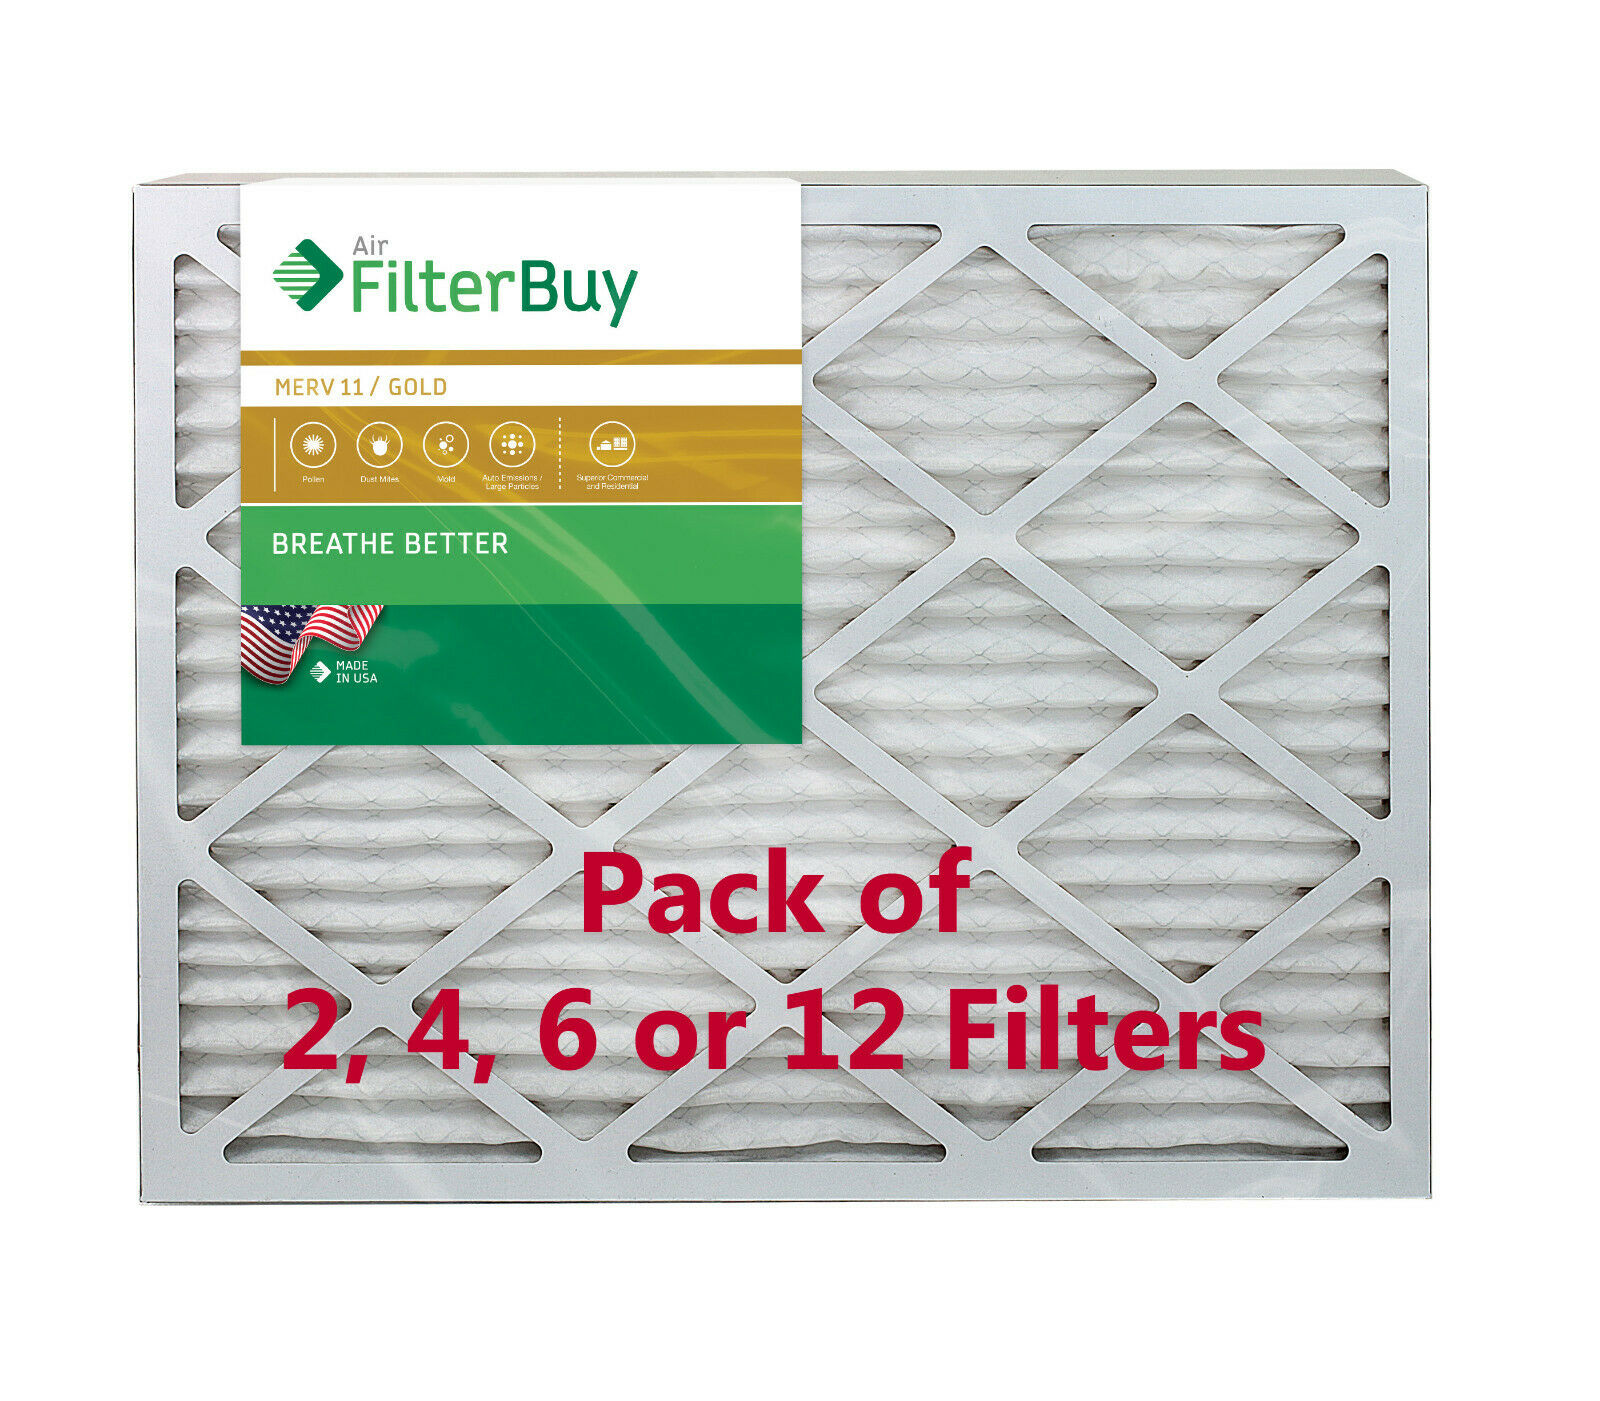 17-1//2 x 23-1//2 x 7//8 Box of 6 Actual Size 18x24x1 Merv 8 Pleated AC Furnace Air Filters